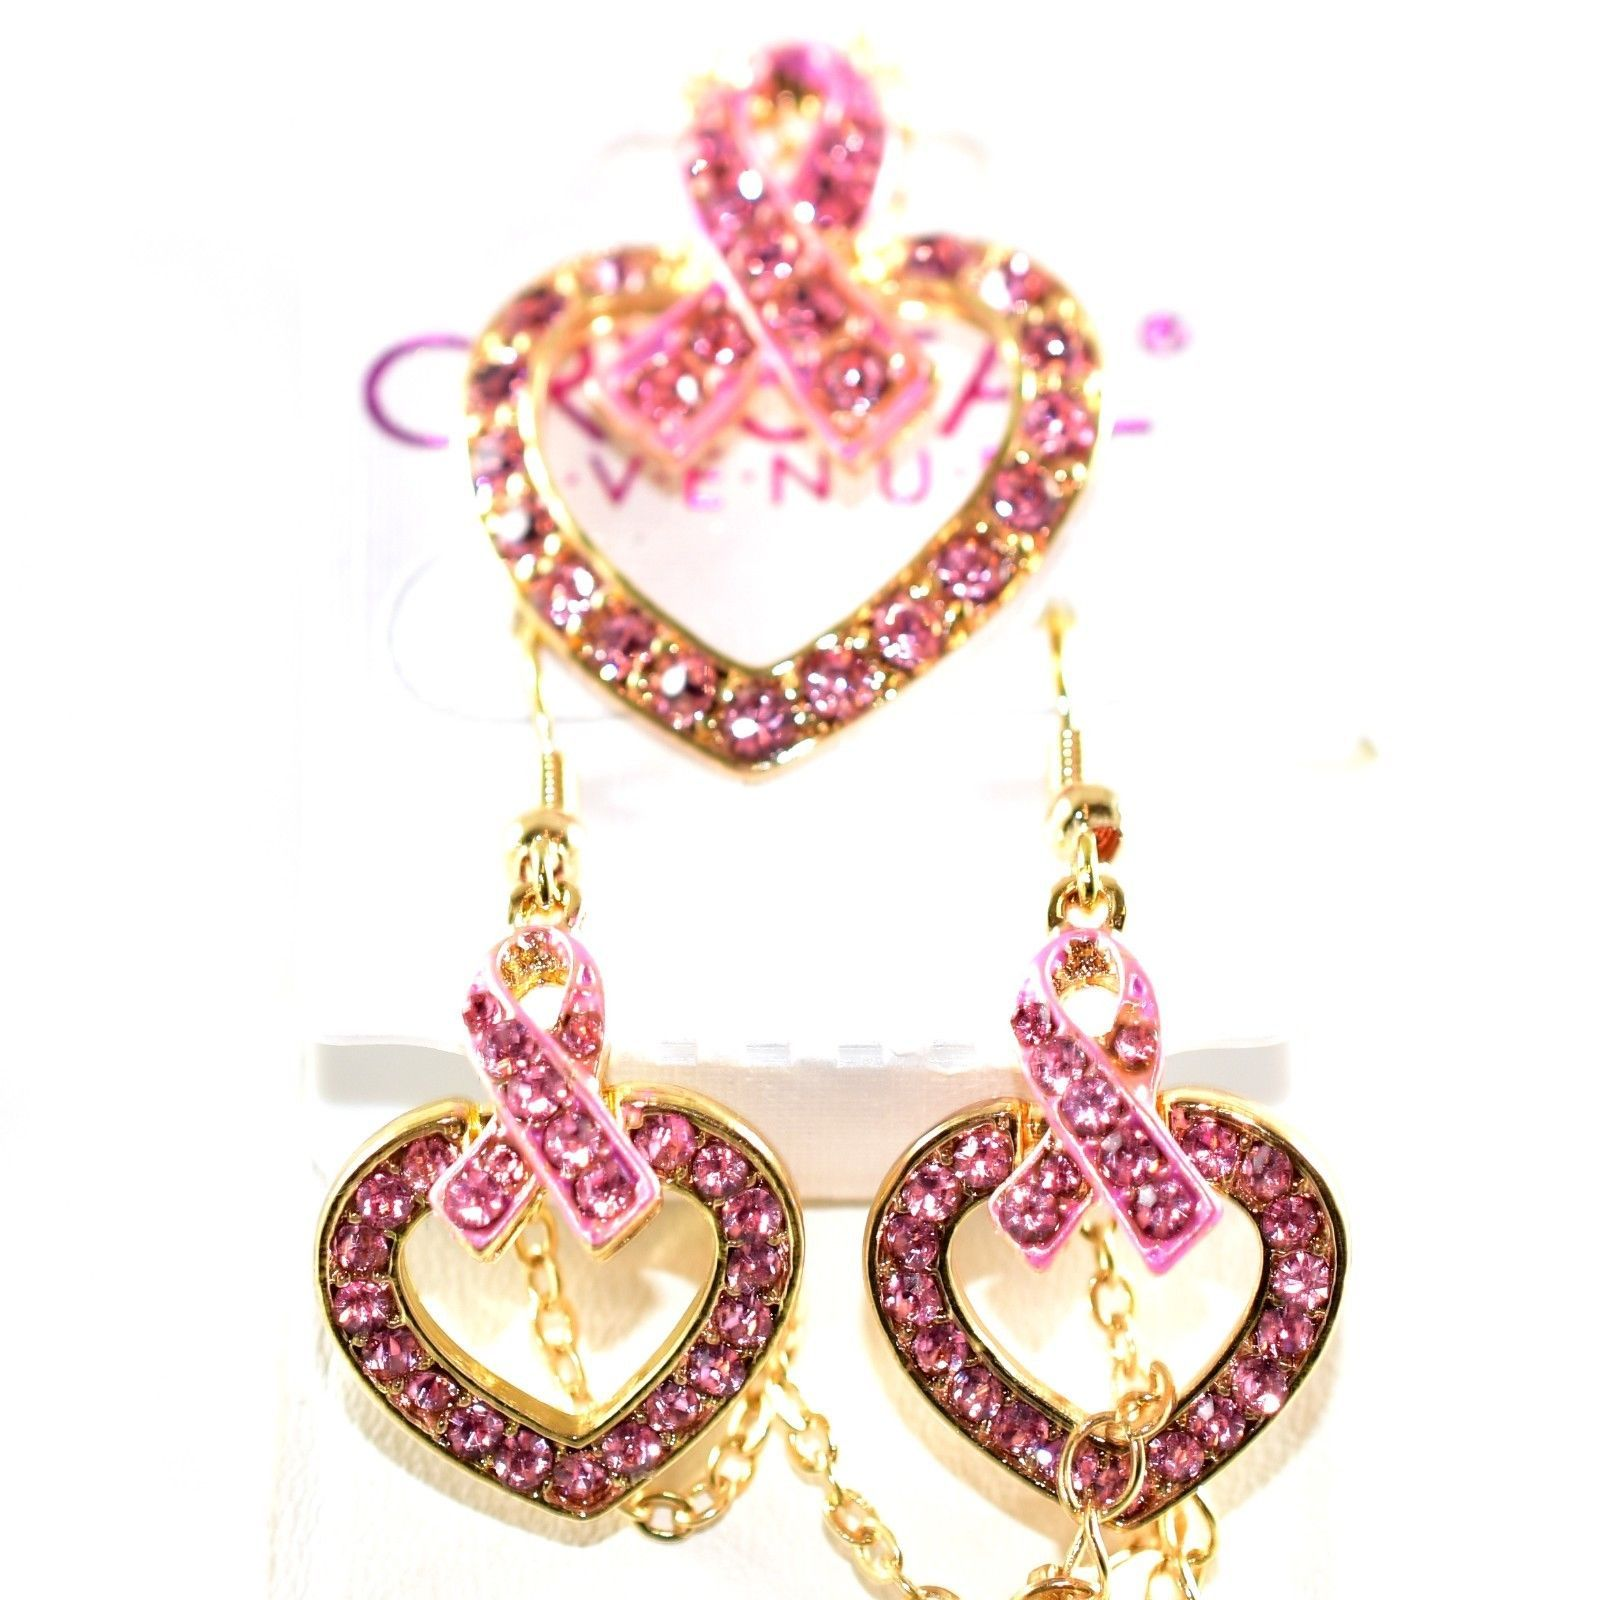 Crystal Avenue Breast Cancer Awareness Heart in Ribbon Necklace & Earring Set